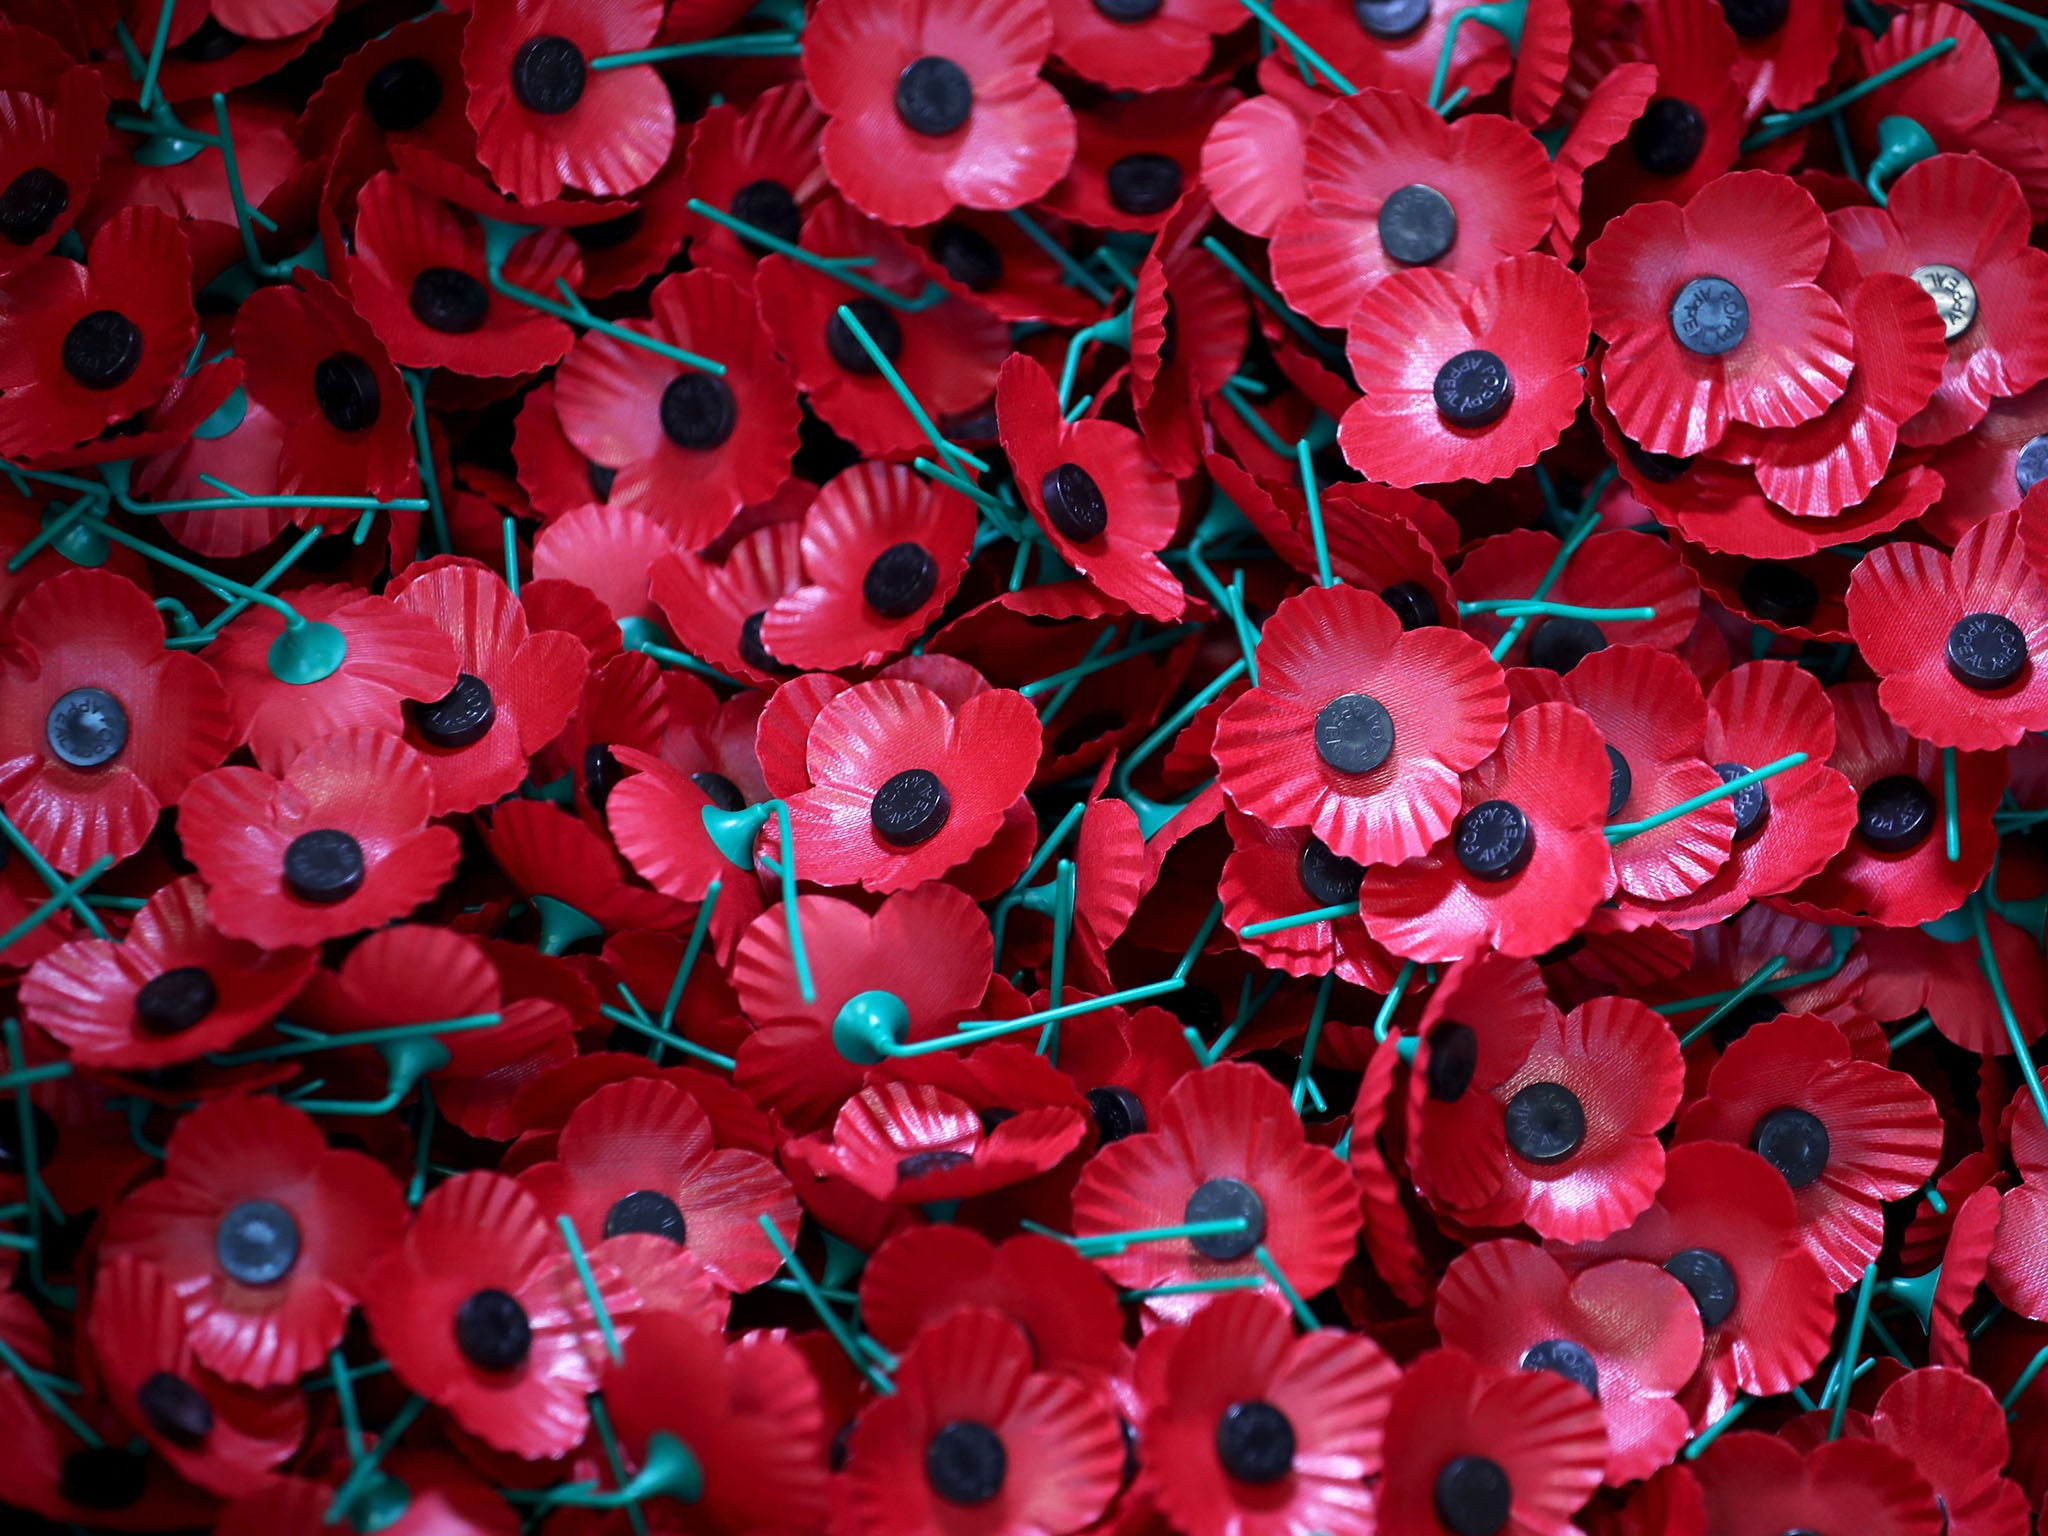 The poppy has lost its original meaning – time to ditch it